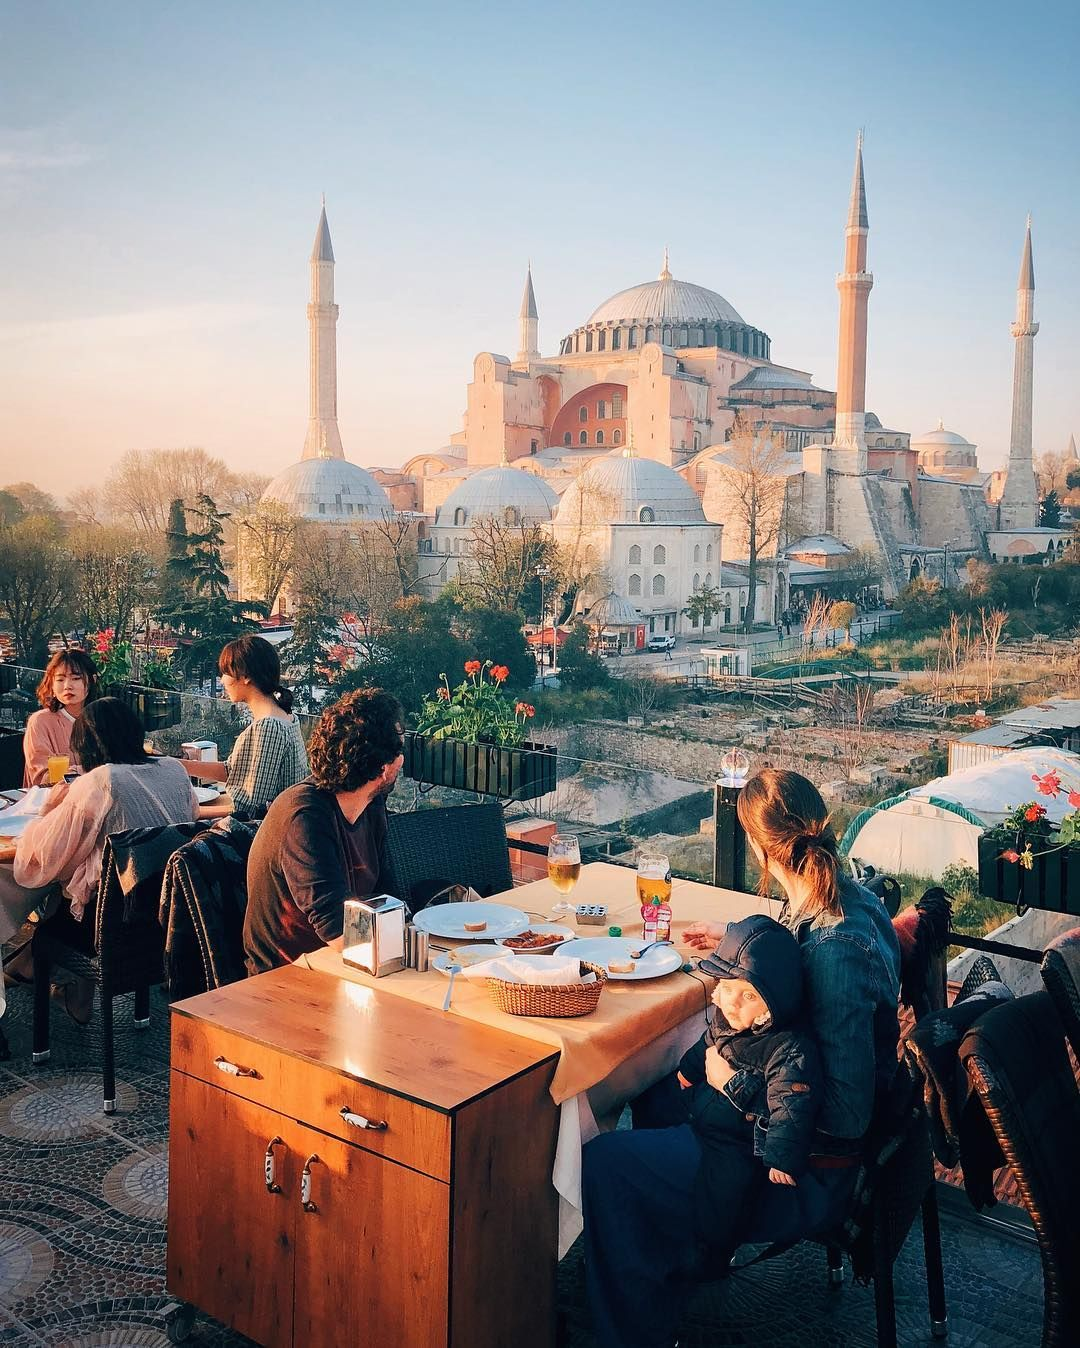 Rooftop Restaurant Next To Our Hotel Fssultanahmet With A Picturesque Views Of Hagiasophia Mosque Istanbul Hagia Sophia Instagram Pictures